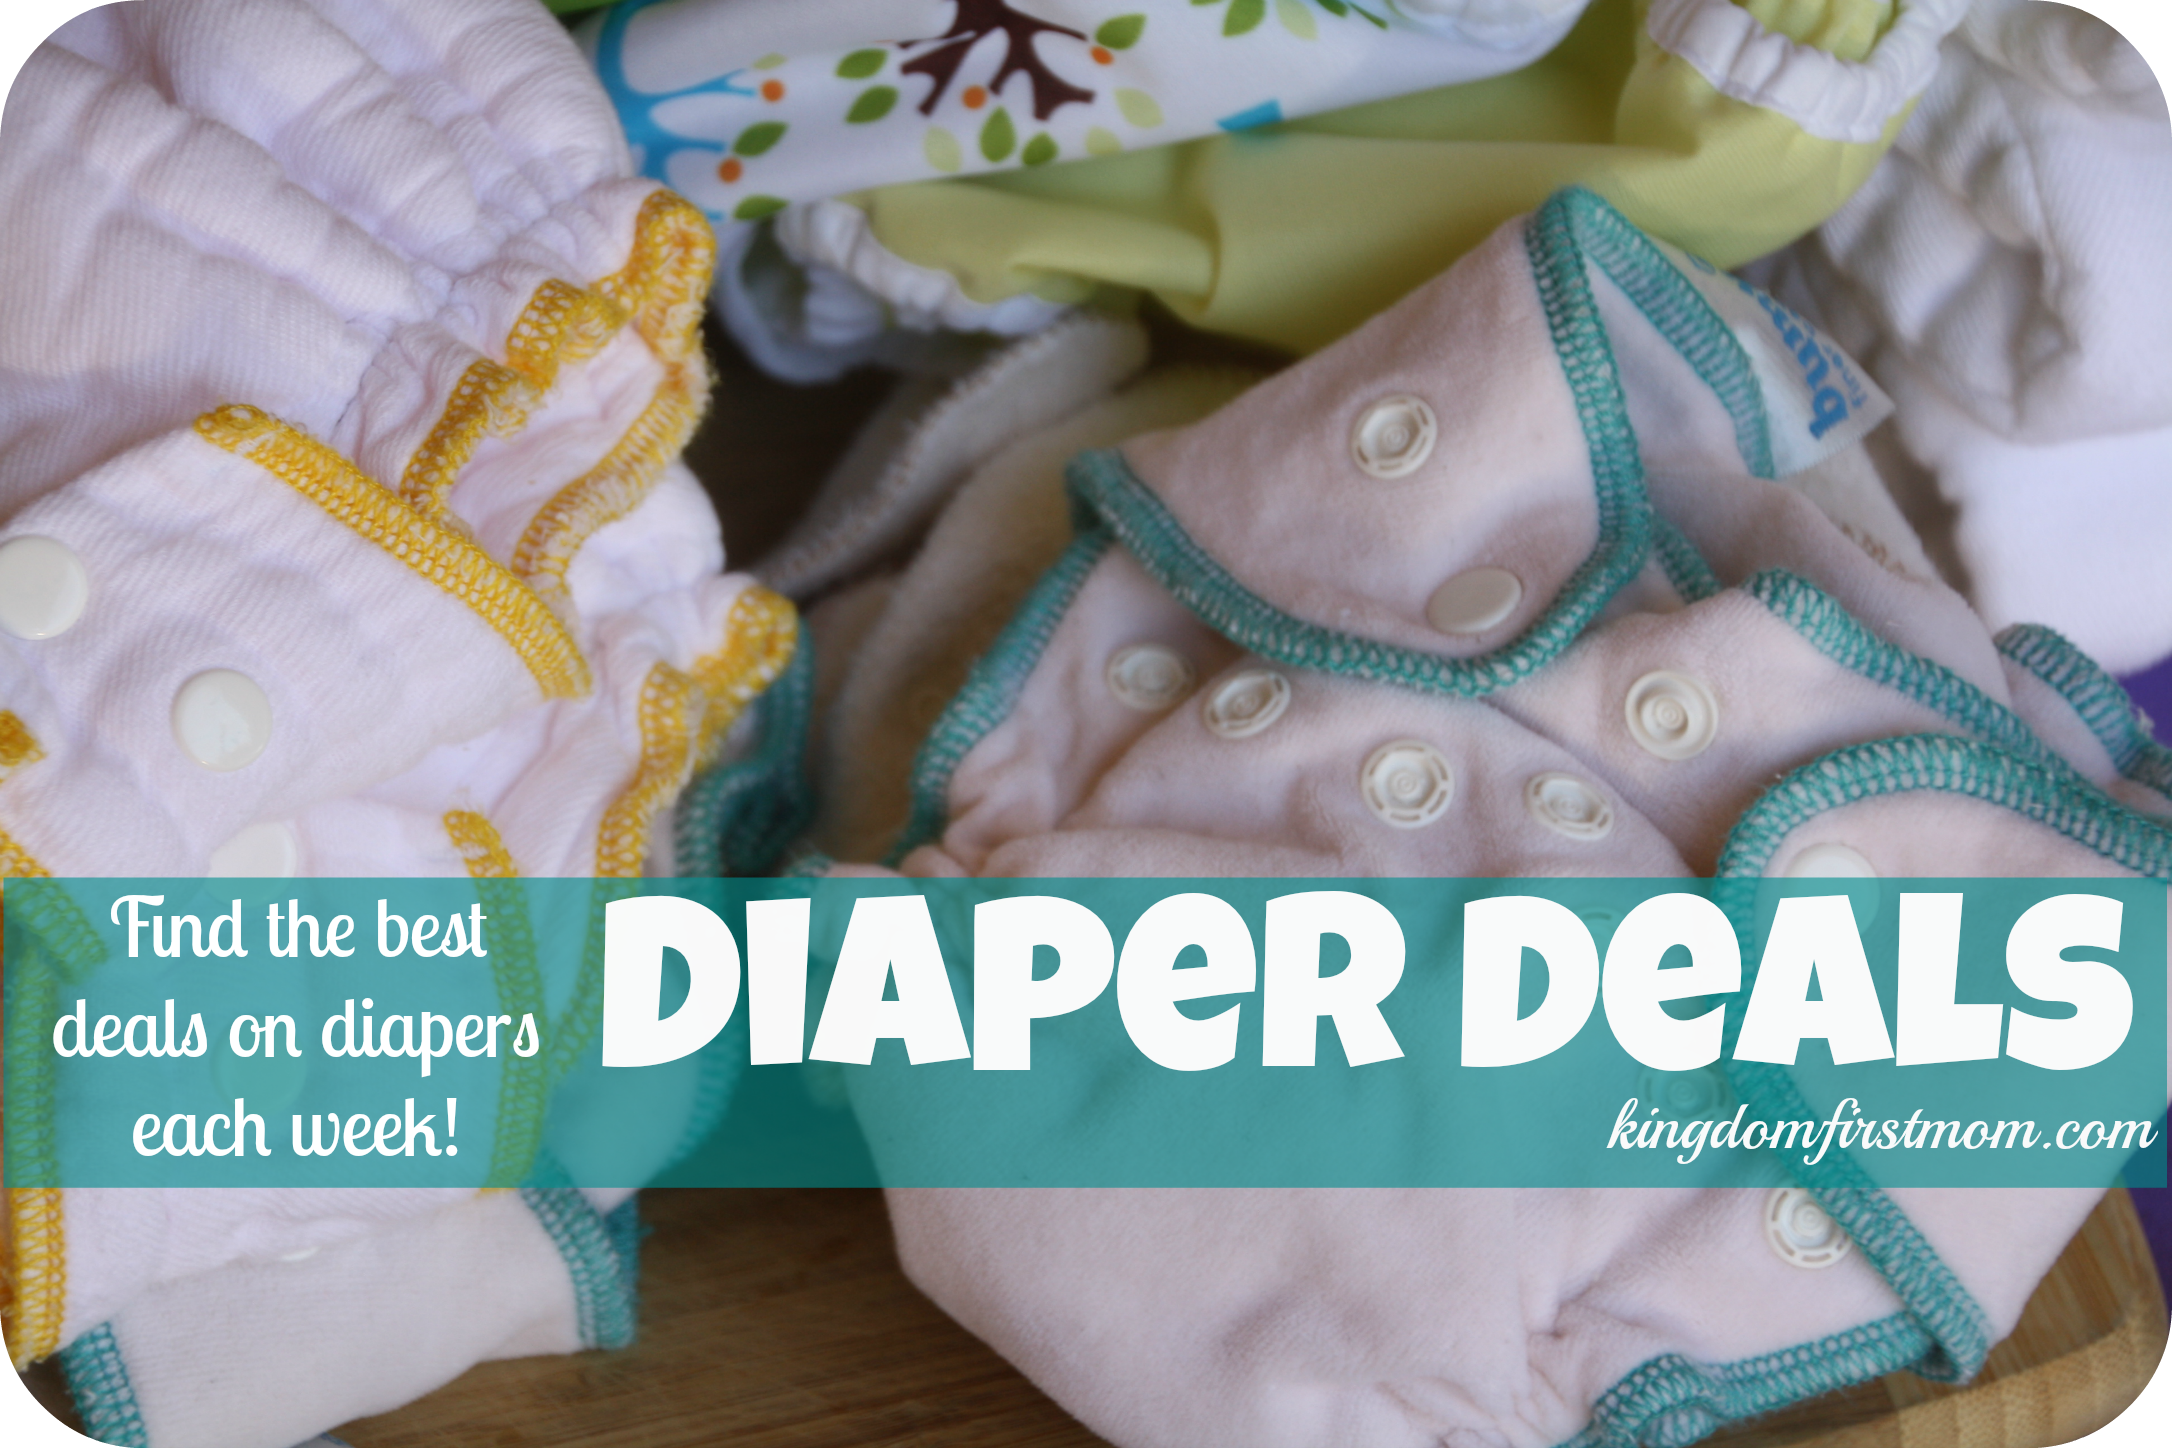 Diaper Coupons - Best Diaper Deals This Week - Find the best deals on Diapers each week with the Living Rich With Coupons Diapers Deals Round Up. Deal Idea. Buy 2 Luvs Big Pack Diapers $(1) $ 1/1 Luvs diapers (LIMIT 2), 11/25 PG, exp. 12/08/ Pay $ Get a $10 Catalina.